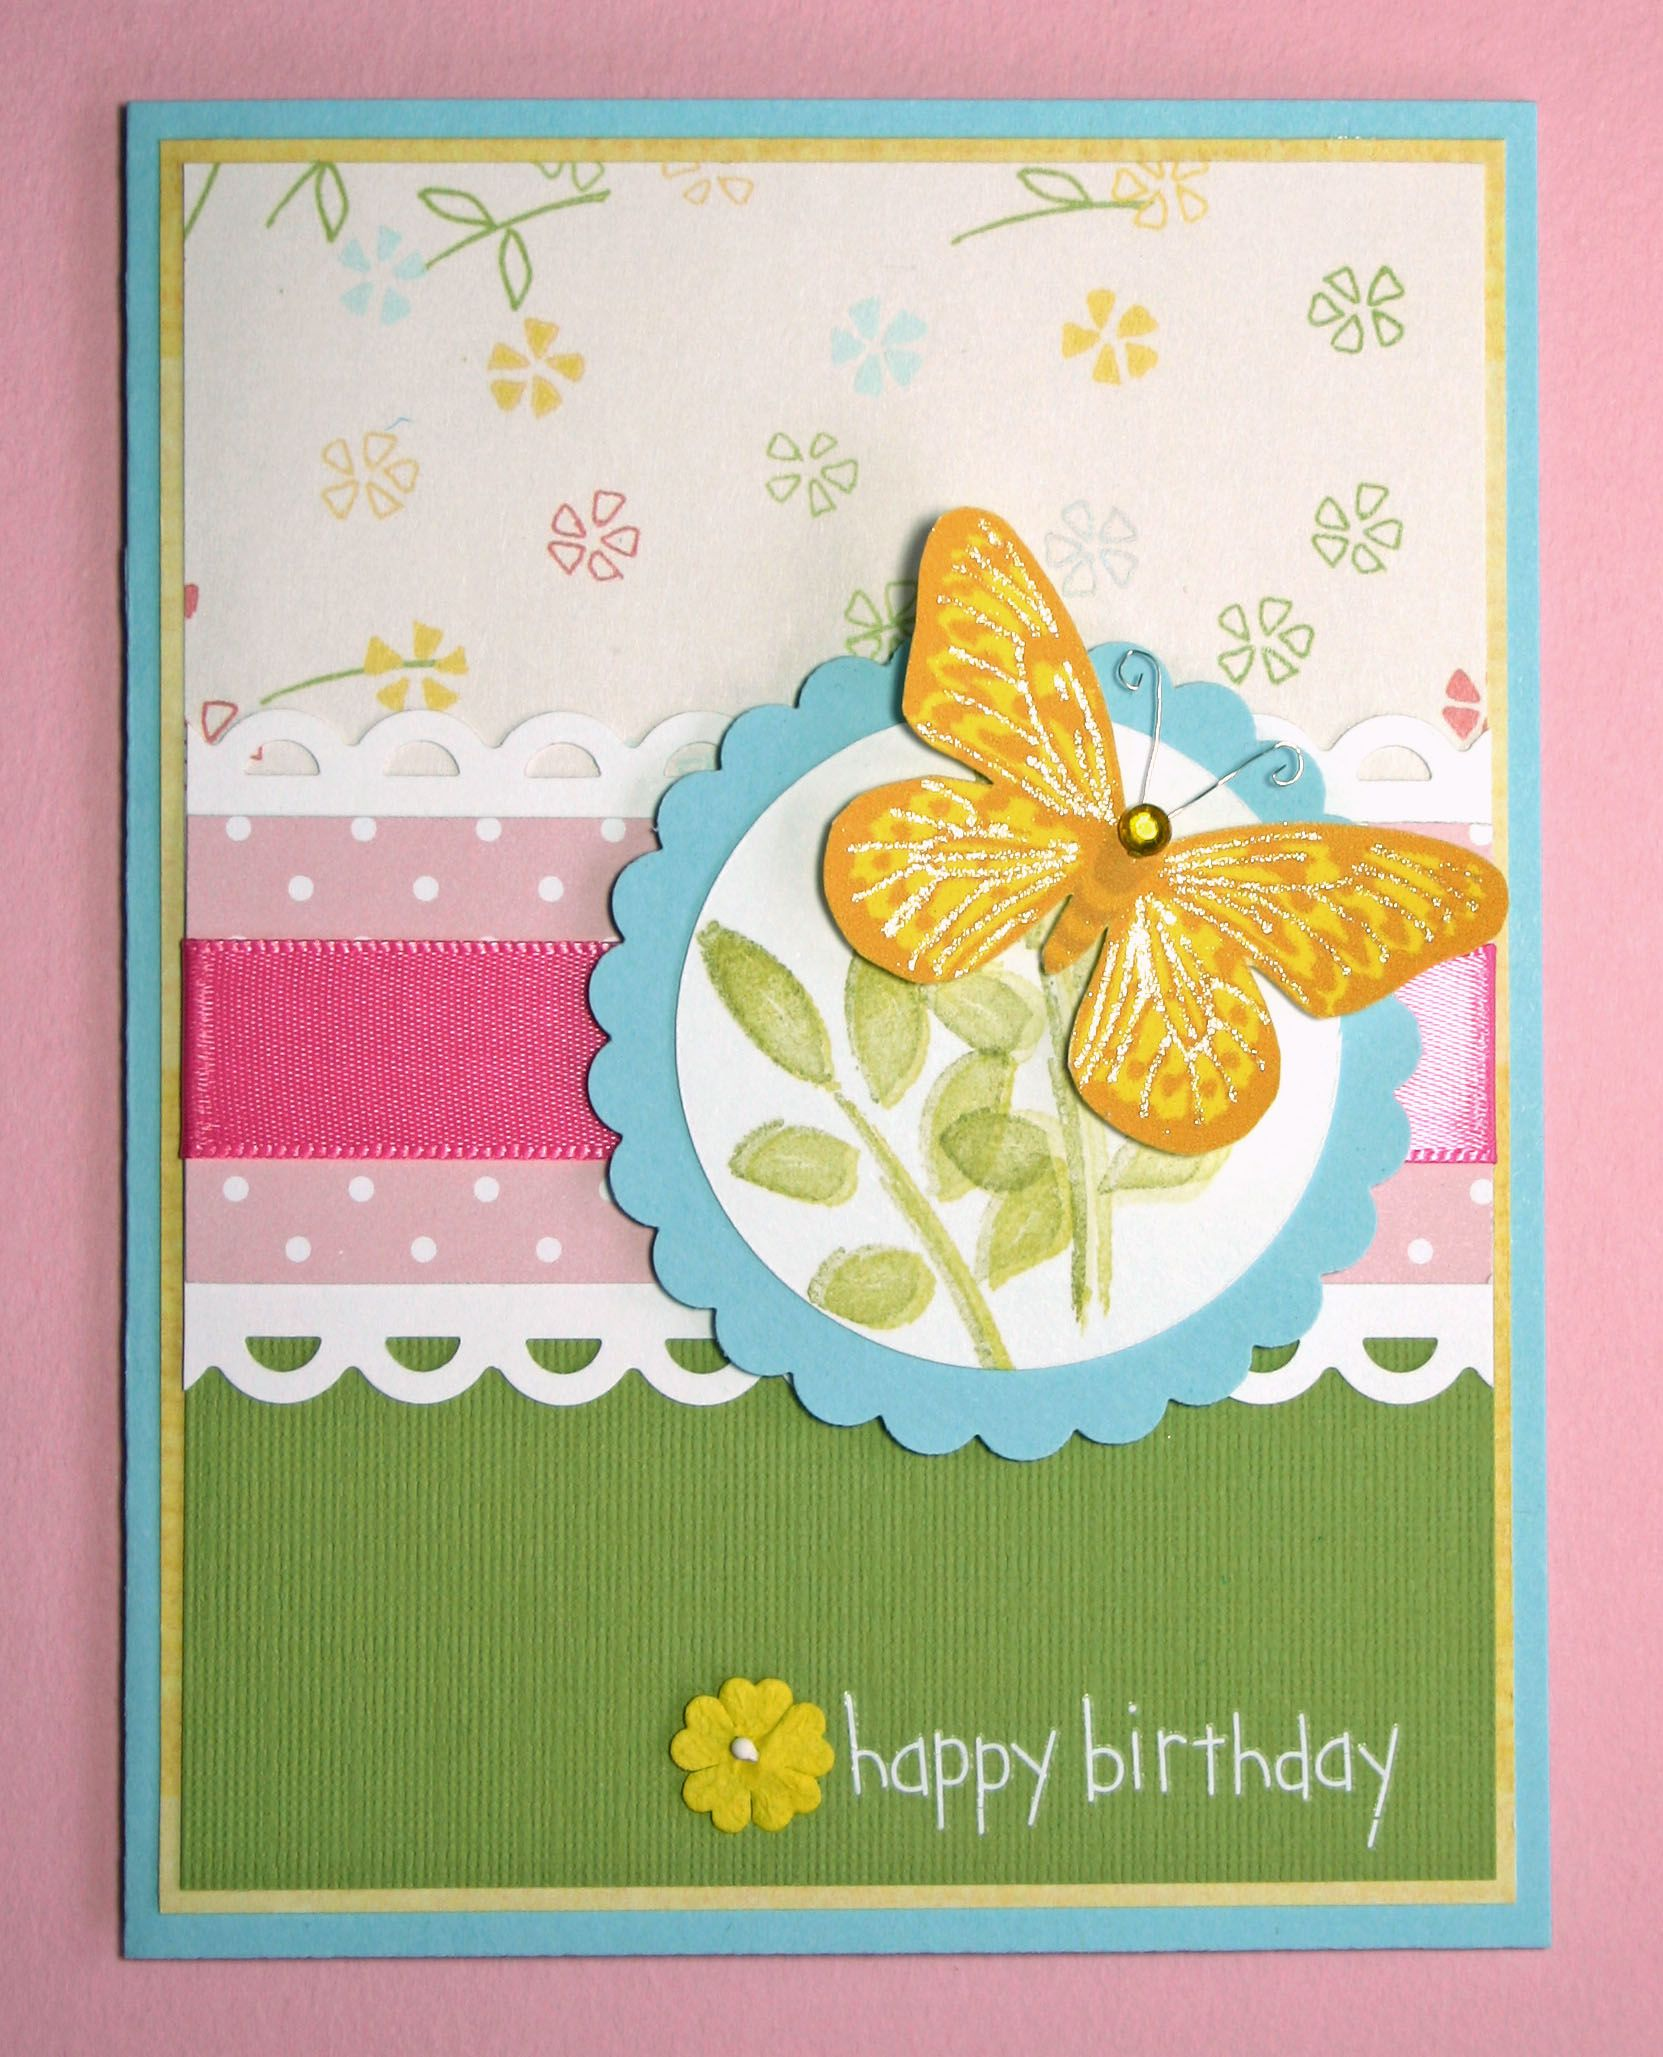 Handmade Card HAPPY BIRTHDAY butterfly family friends